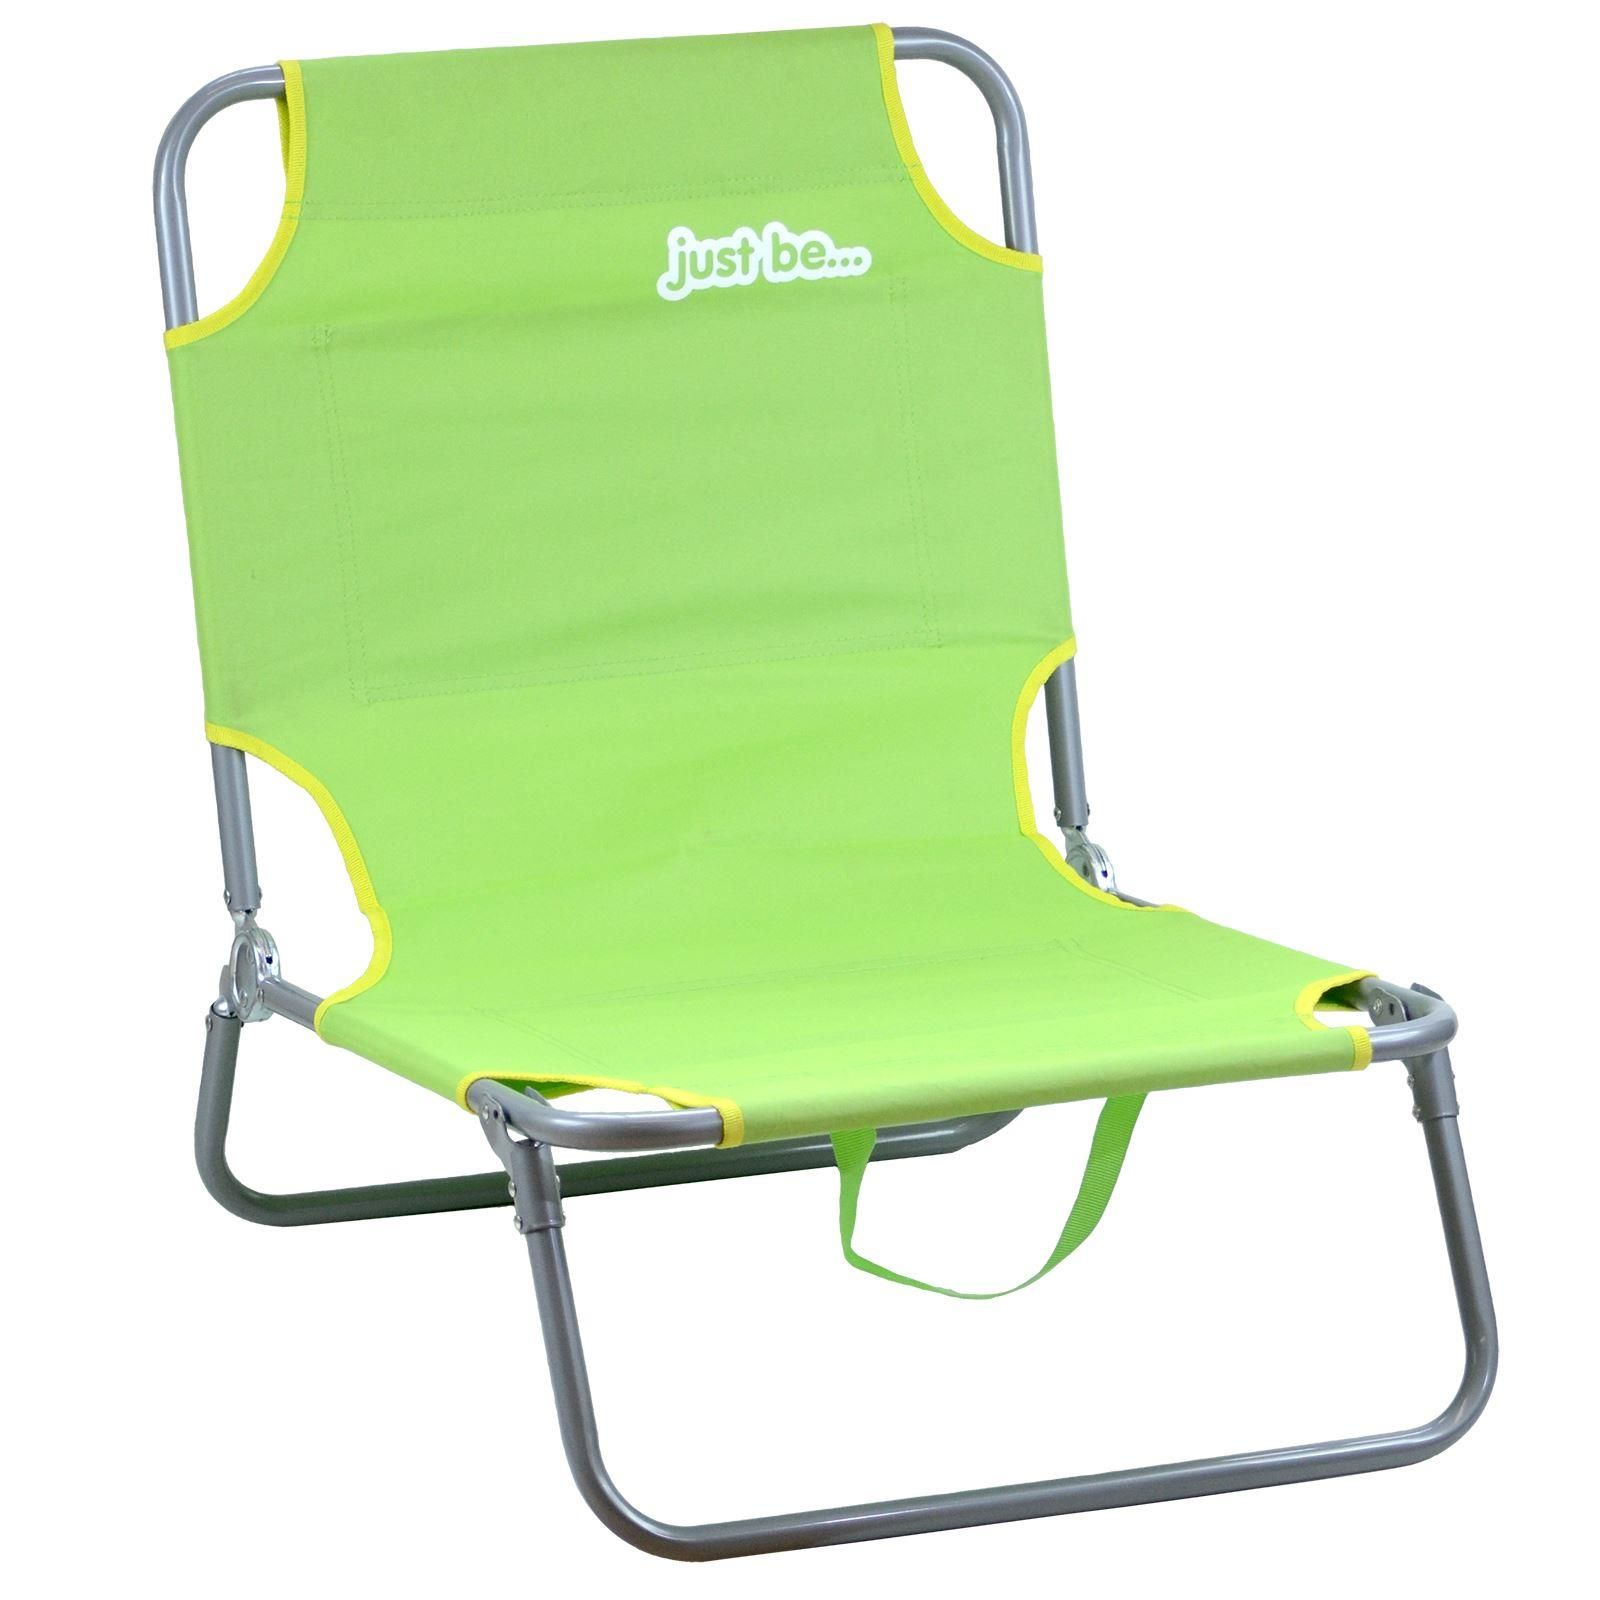 sun-chair-green-unfolded